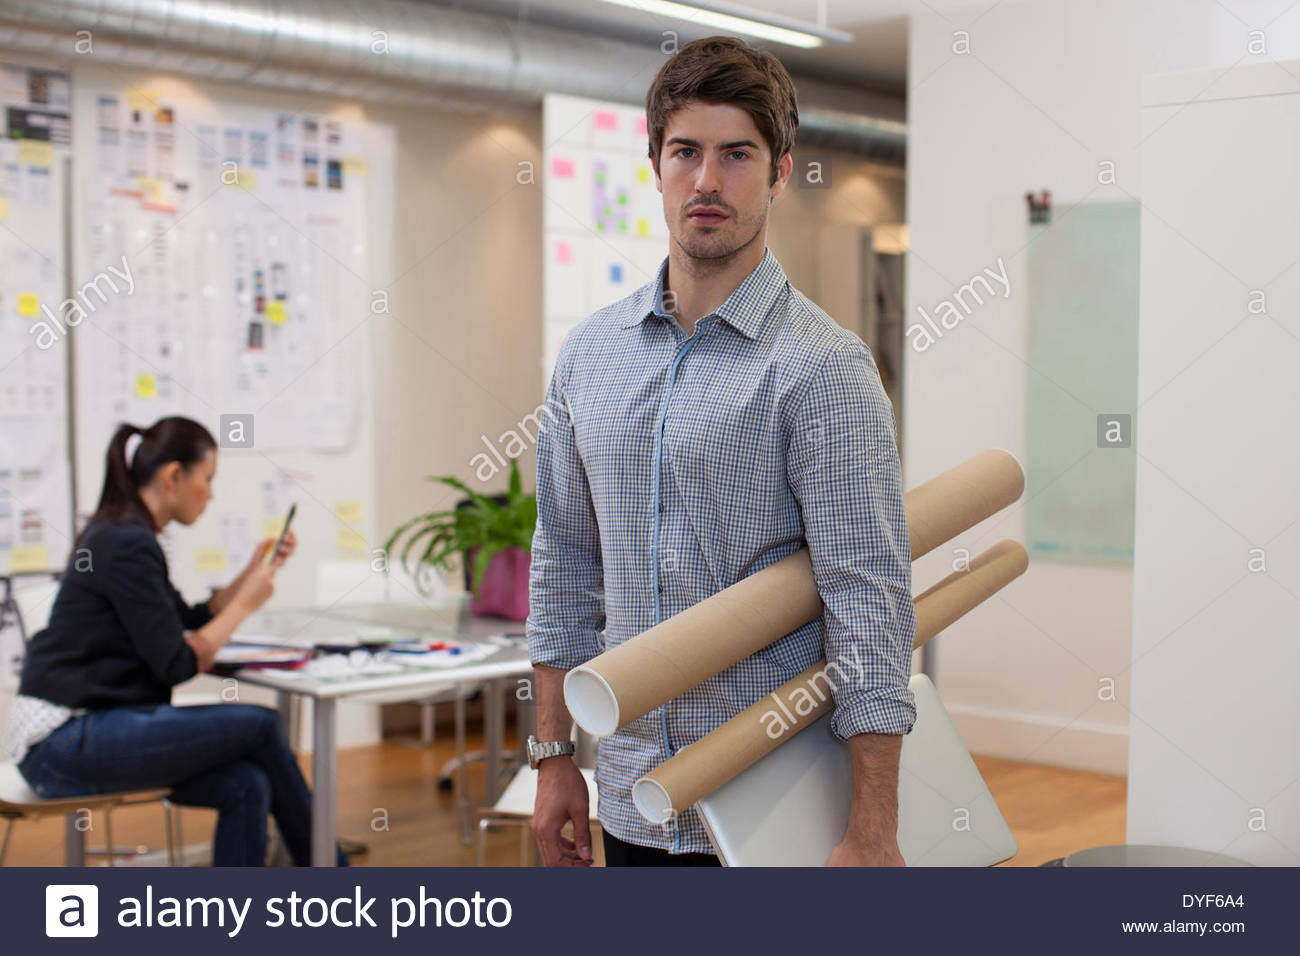 Portrait architect holding blueprint tubes in office stock photo portrait architect holding blueprint tubes in office malvernweather Images